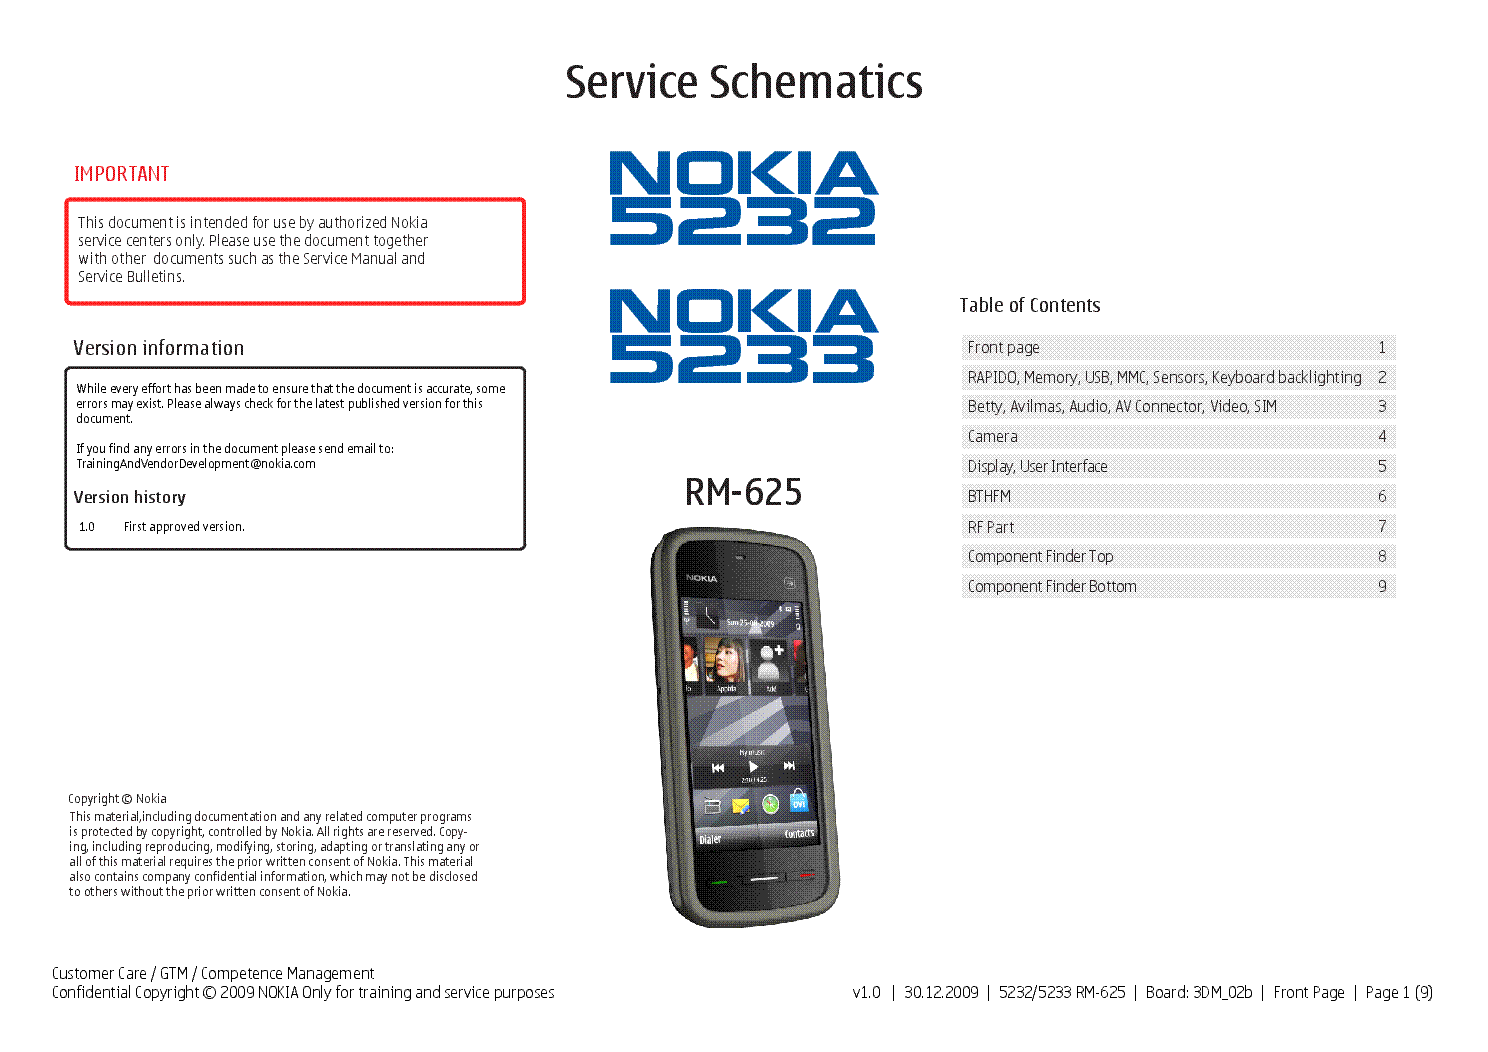 Pdf Viewer For Nokia 5233